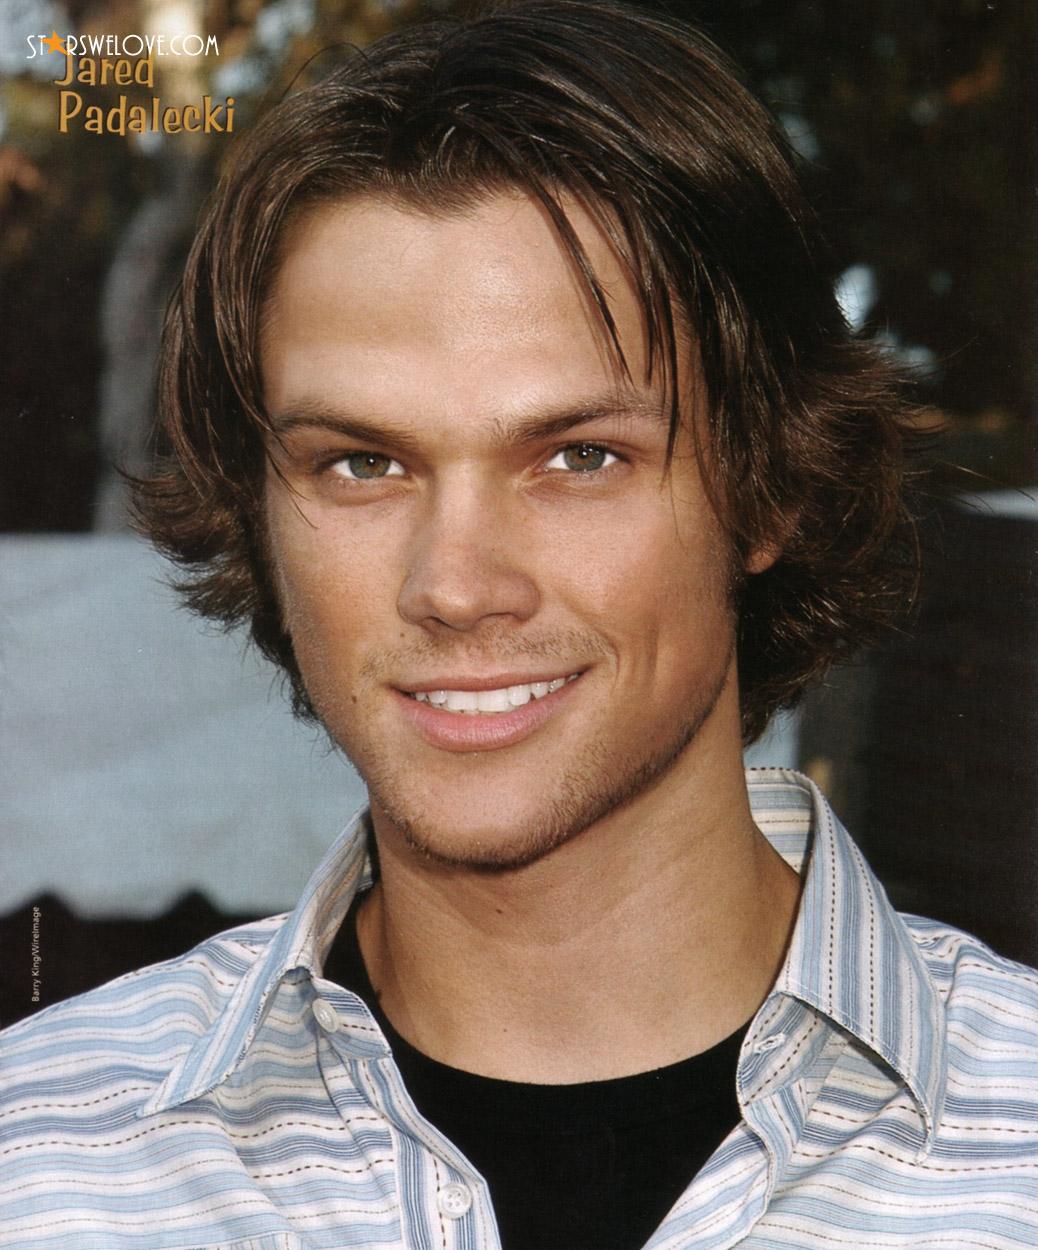 Jared Padalecki photo (jared_padalecki003, 1038 x 1250 pixels, 351 kB)